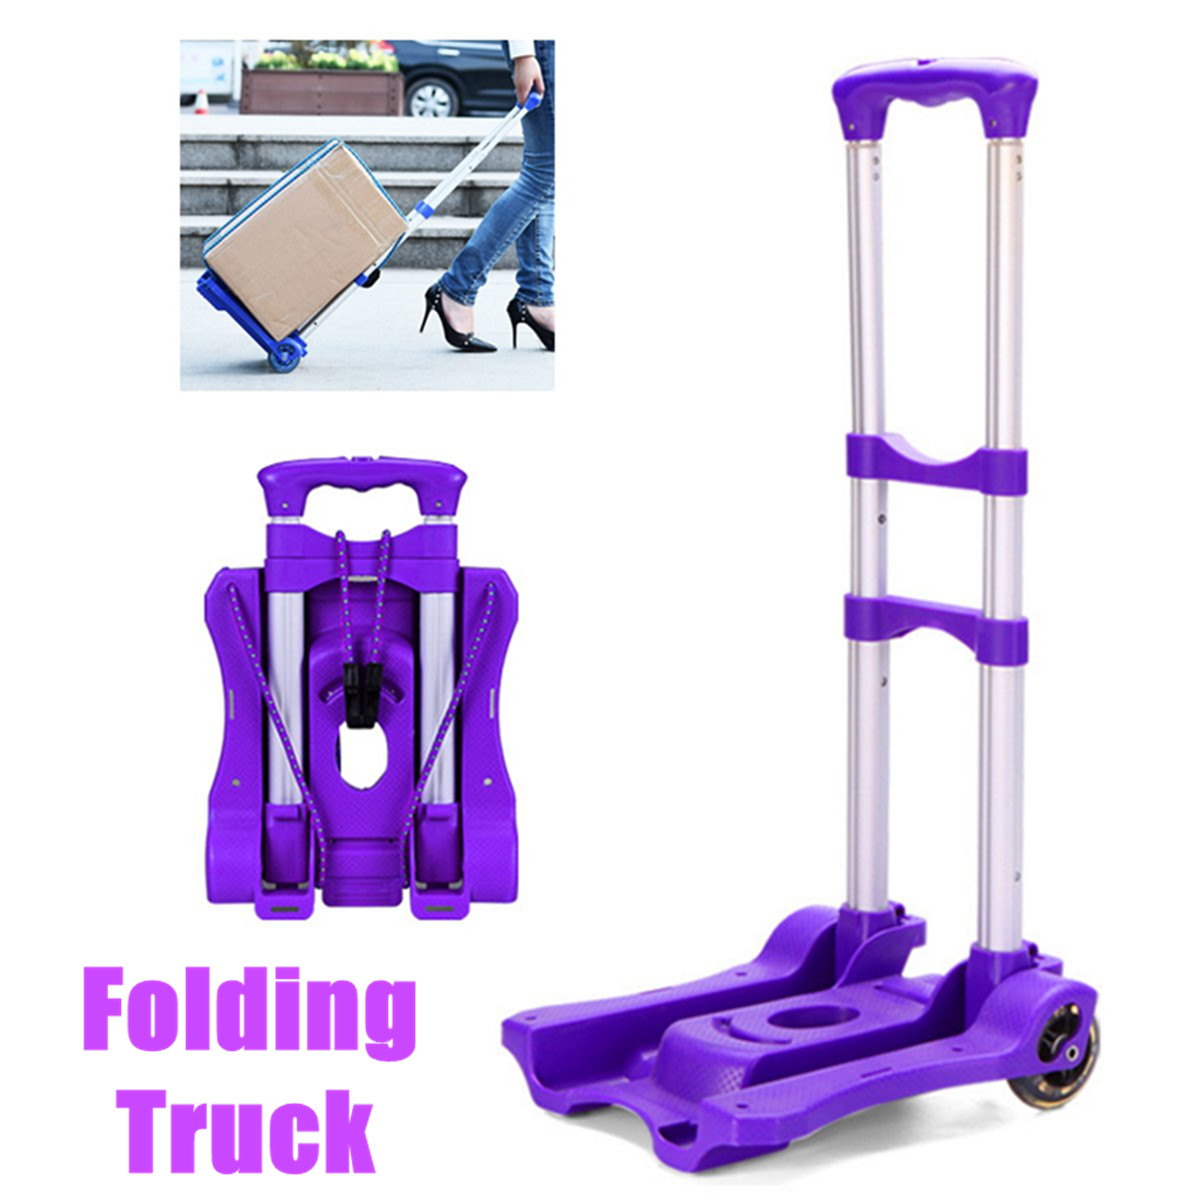 40KG Portable Travel Trailer Aluminum Alloy Car Folding Luggage Cart Household Car Luggage Cart Shopping Trolley Trunk Trailer